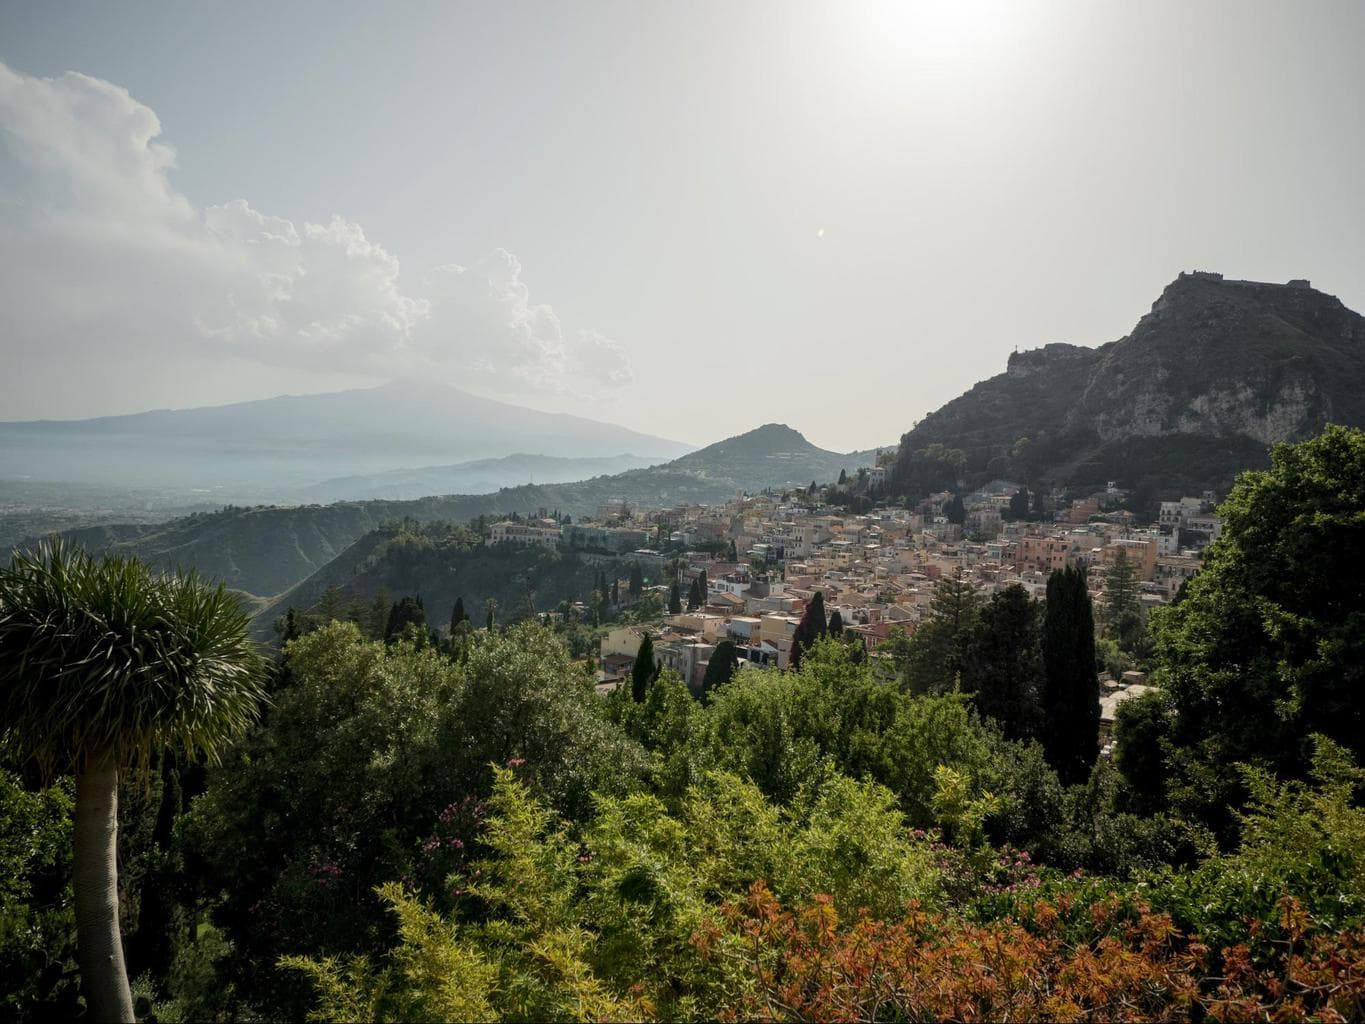 Taormina has a rich past